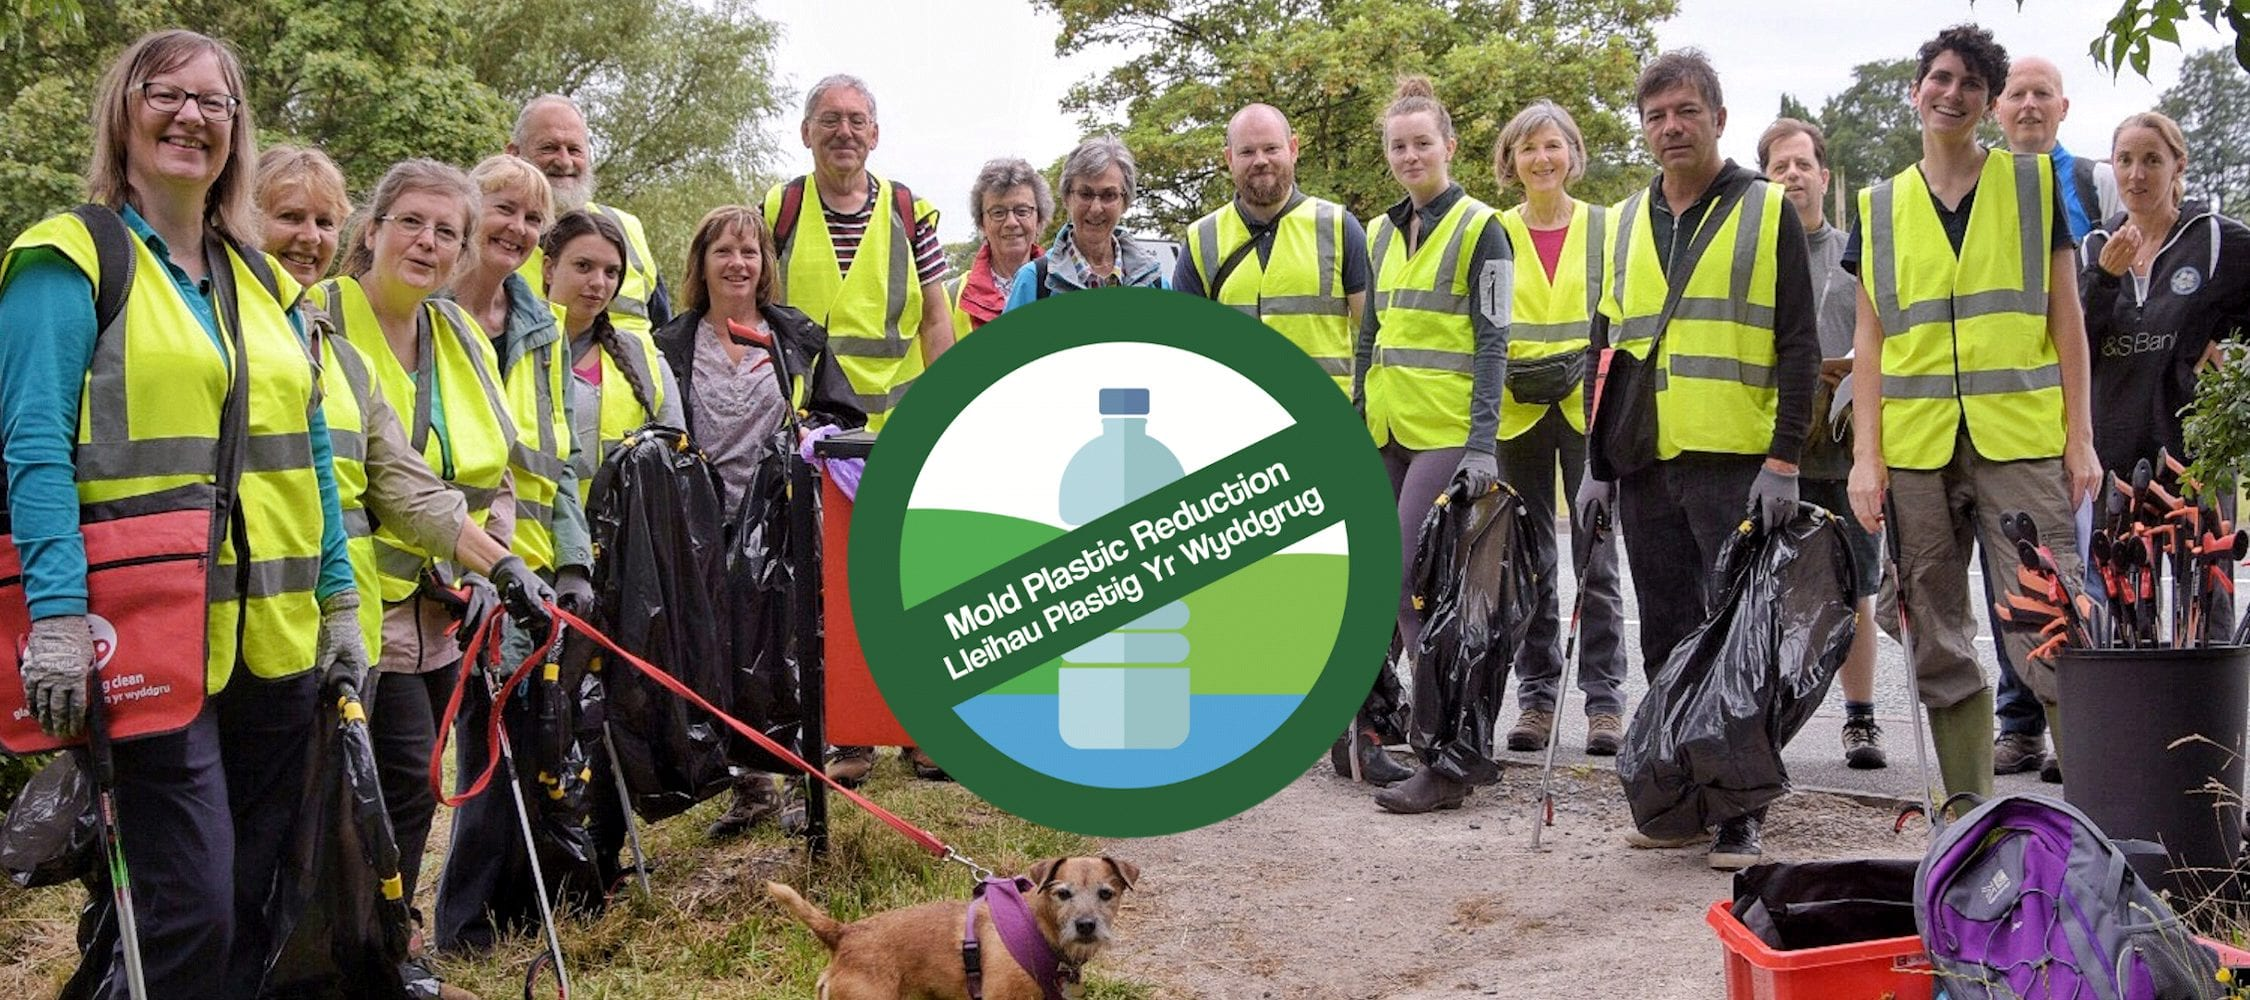 Hero image for Home page showing MPR supporters at a litter pick